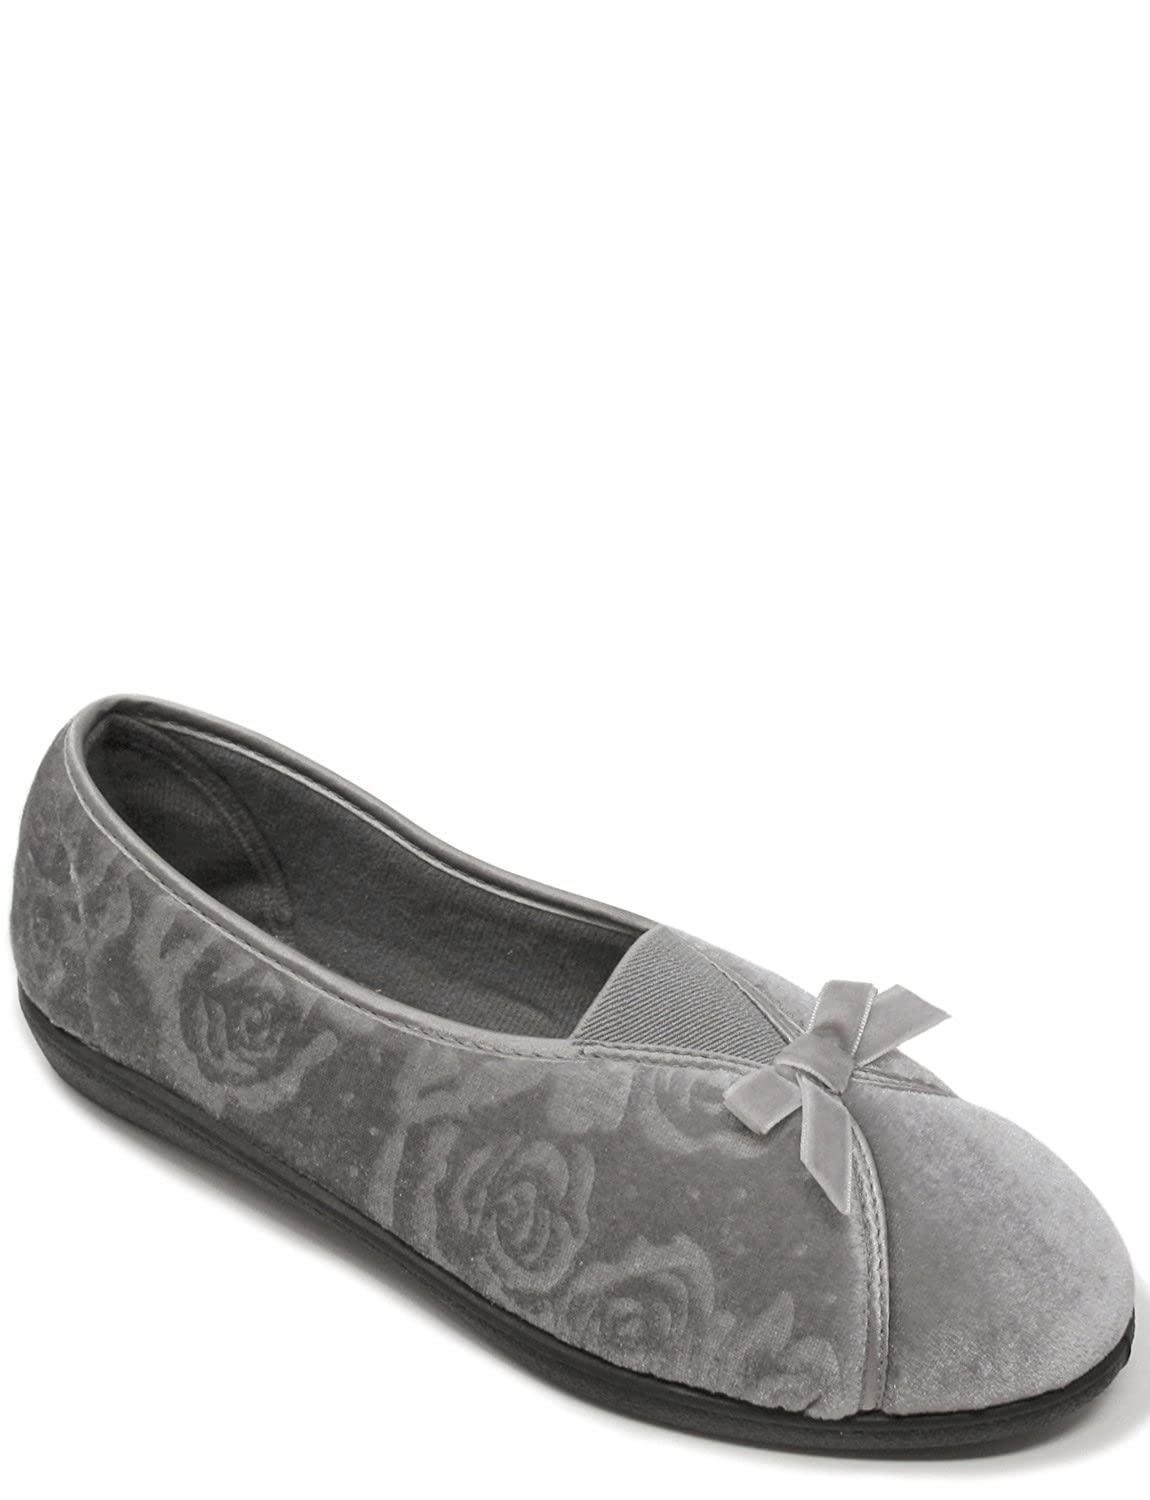 Chums Ladies Womens Velour Slipper with Elastic Gusset